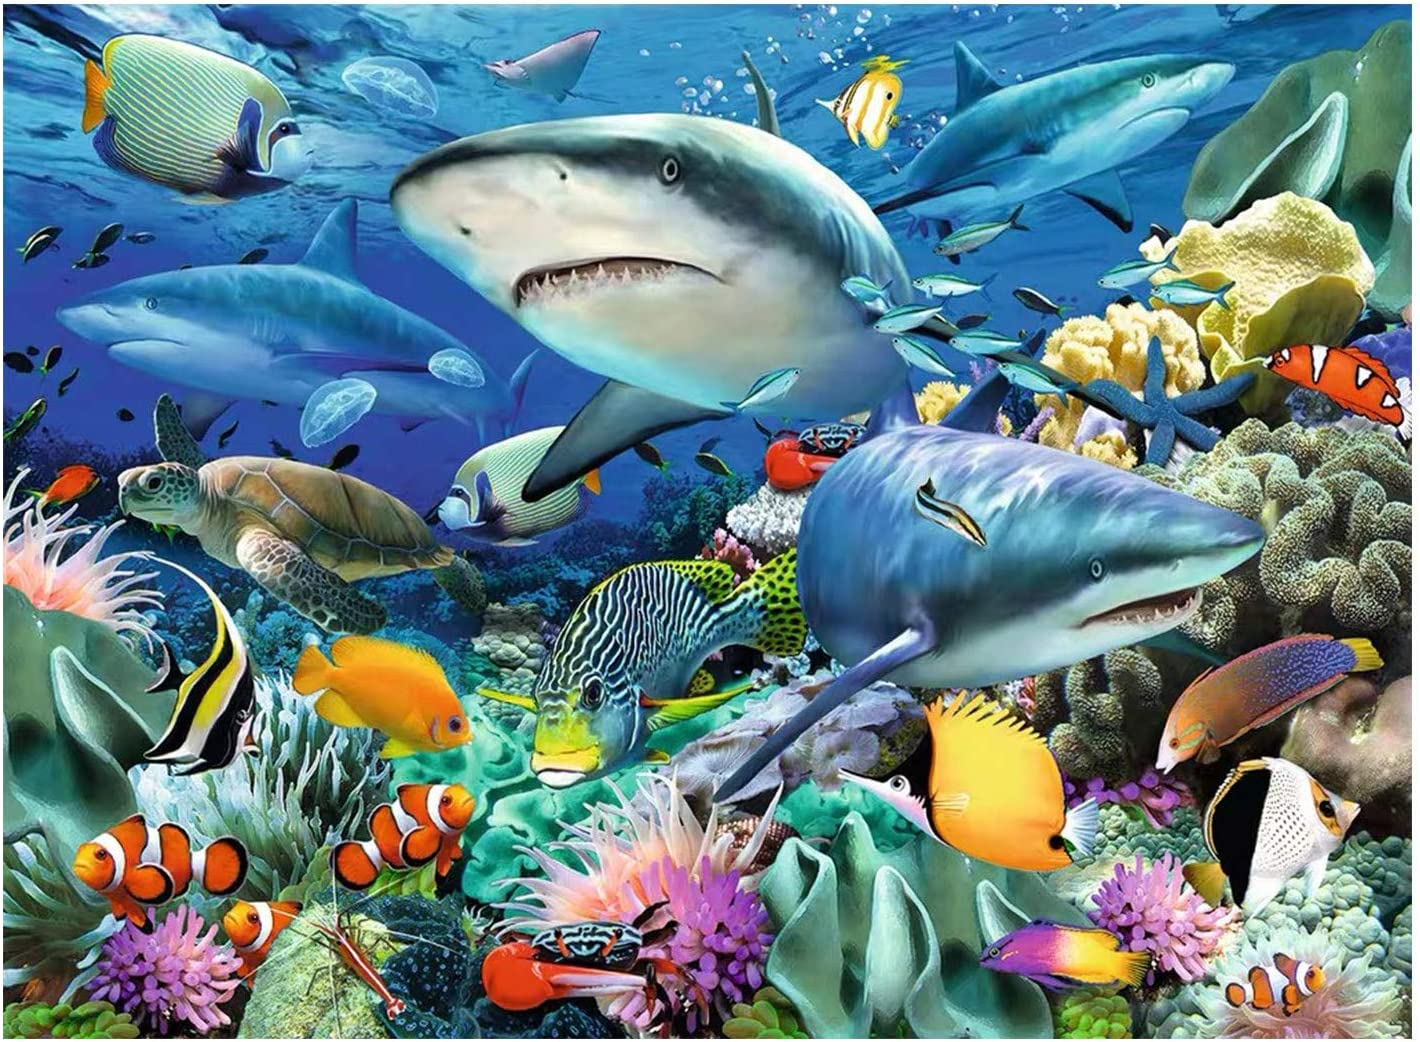 20. 2000 Pieces Shark Virtual Game Puzzle